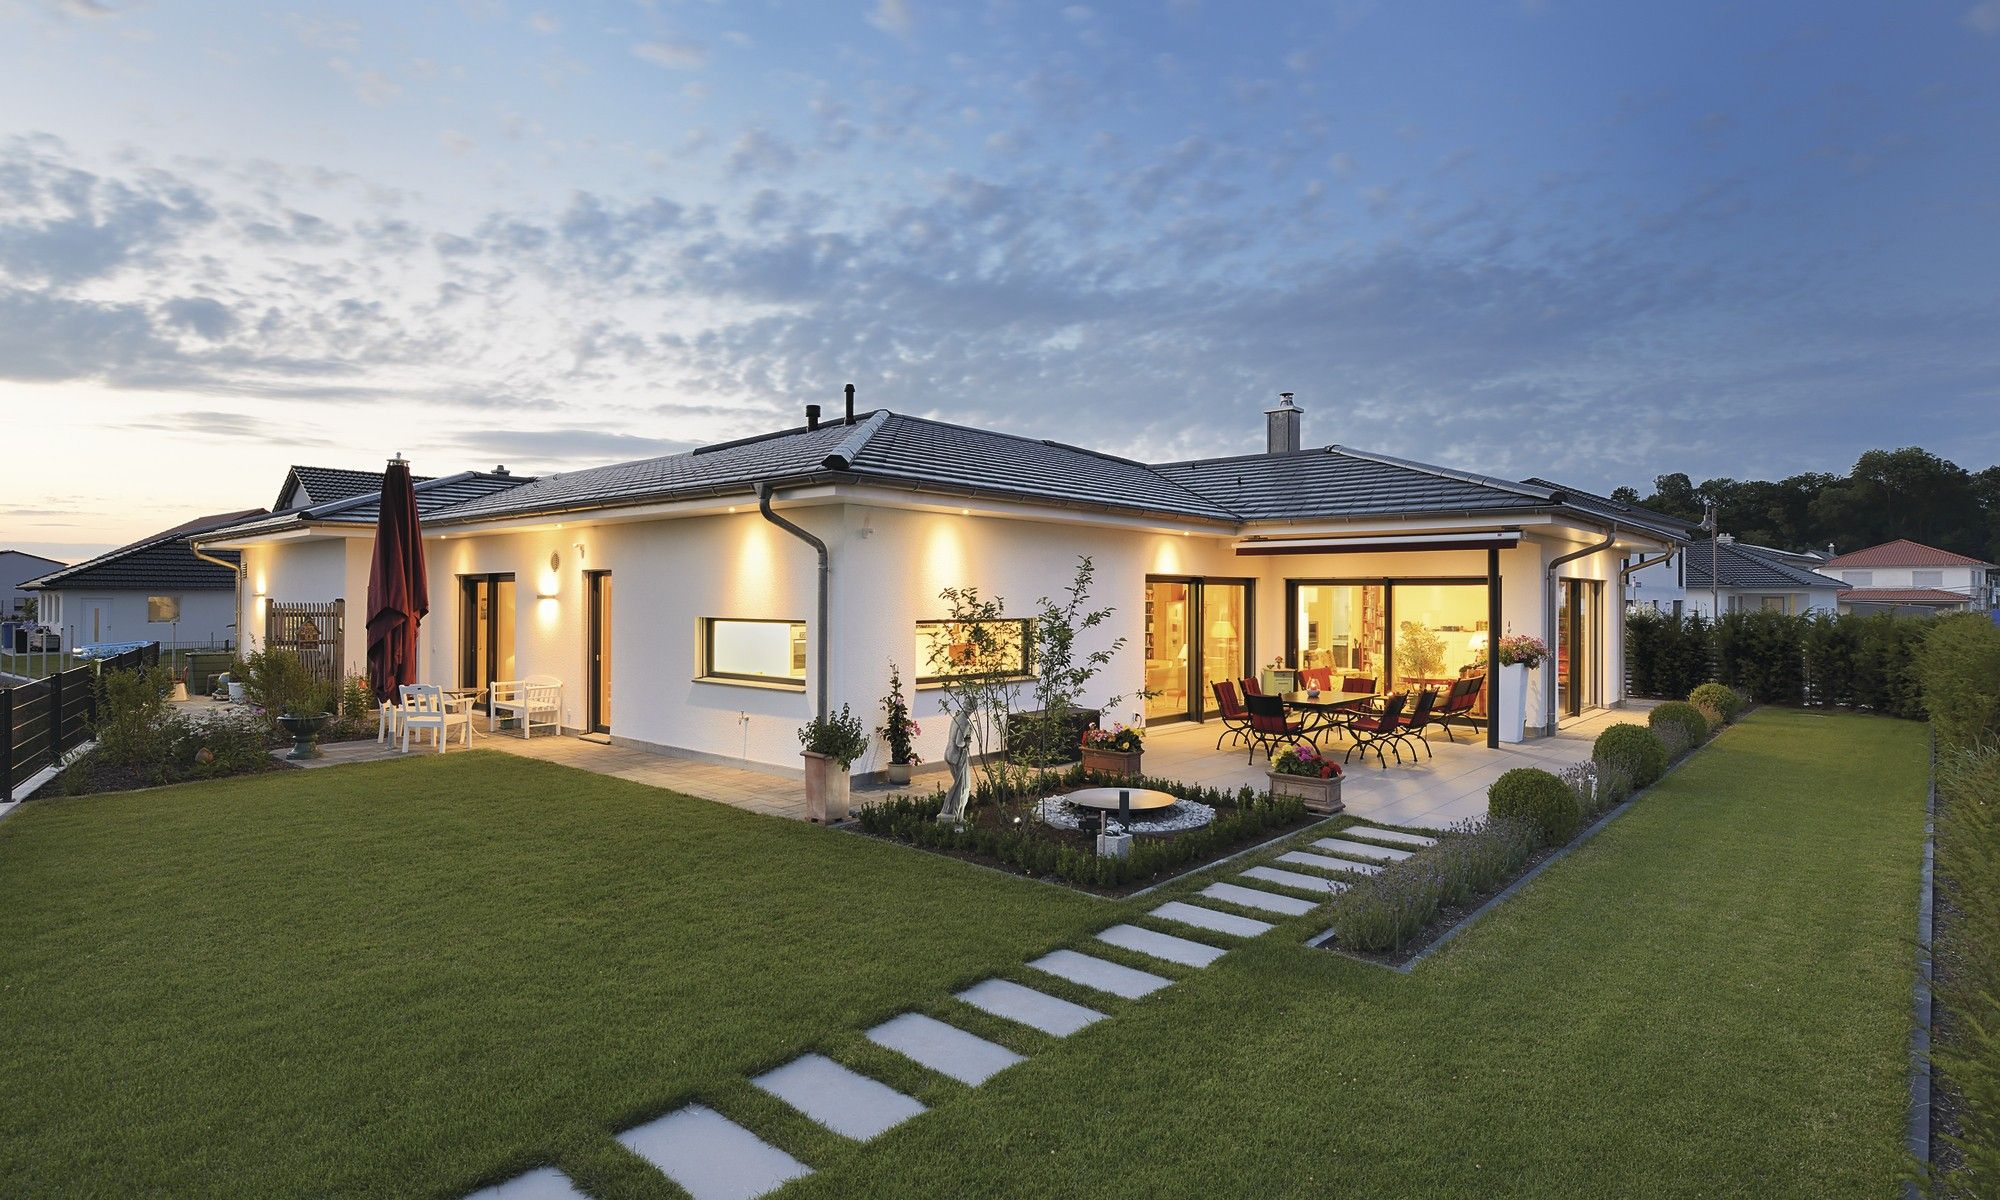 Bungalow in zeitlosem Design | exterior | Pinterest | Bungalow ...